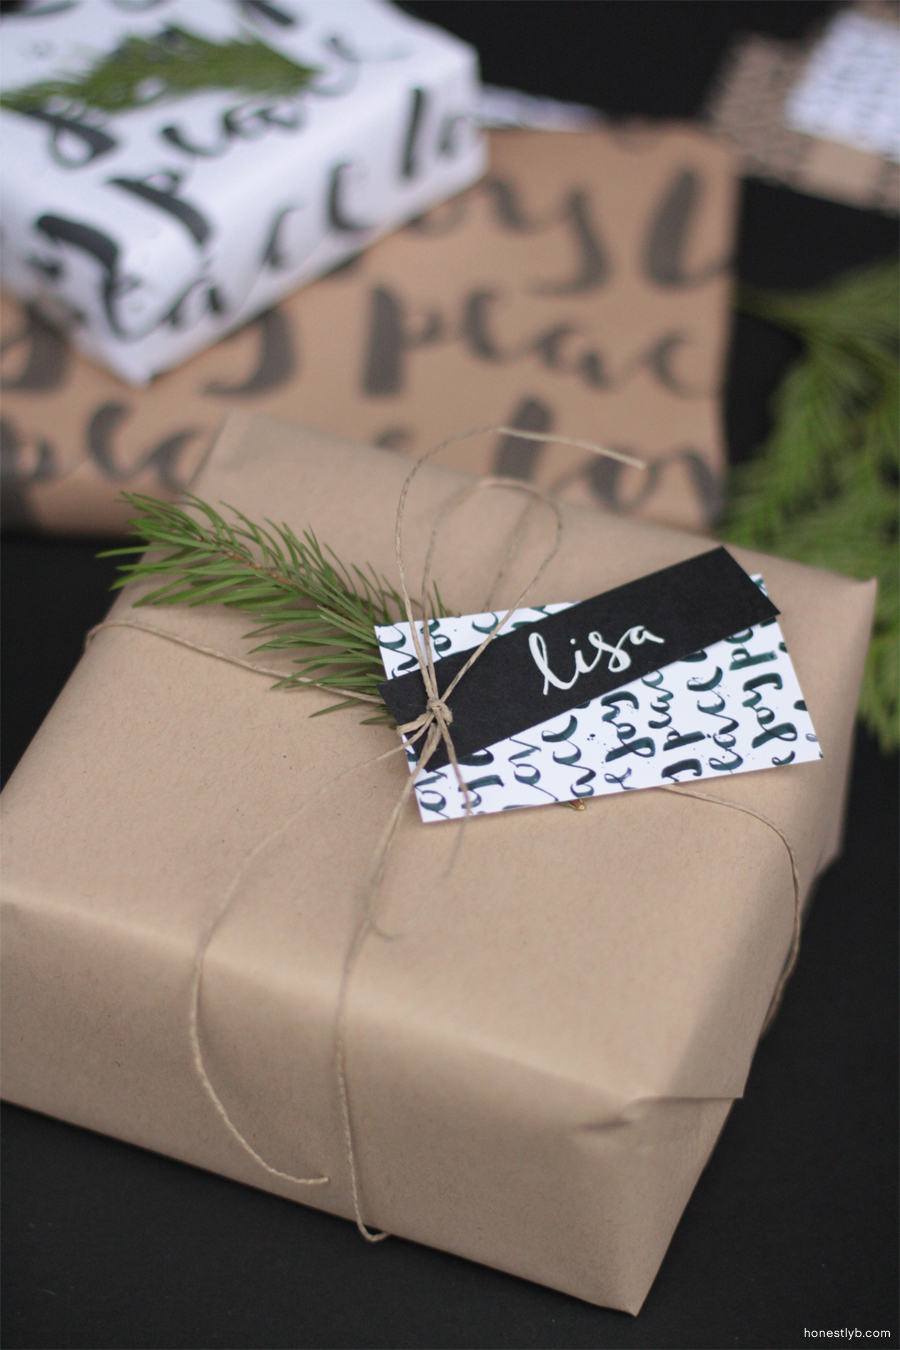 wrapping | honestly, b.